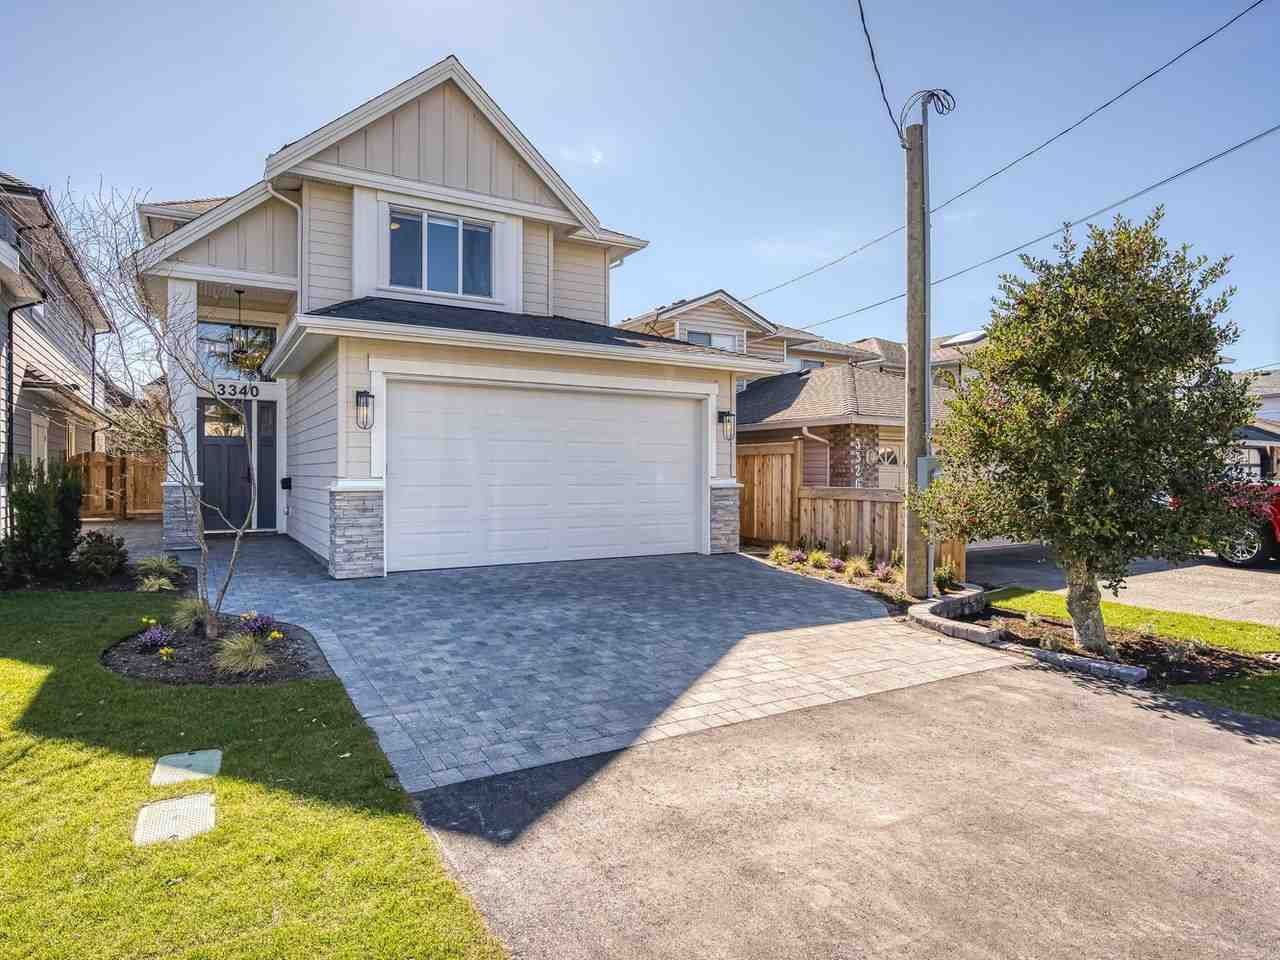 3340 PLEASANT STREET - Steveston Village House/Single Family for sale, 4 Bedrooms (R2556134)